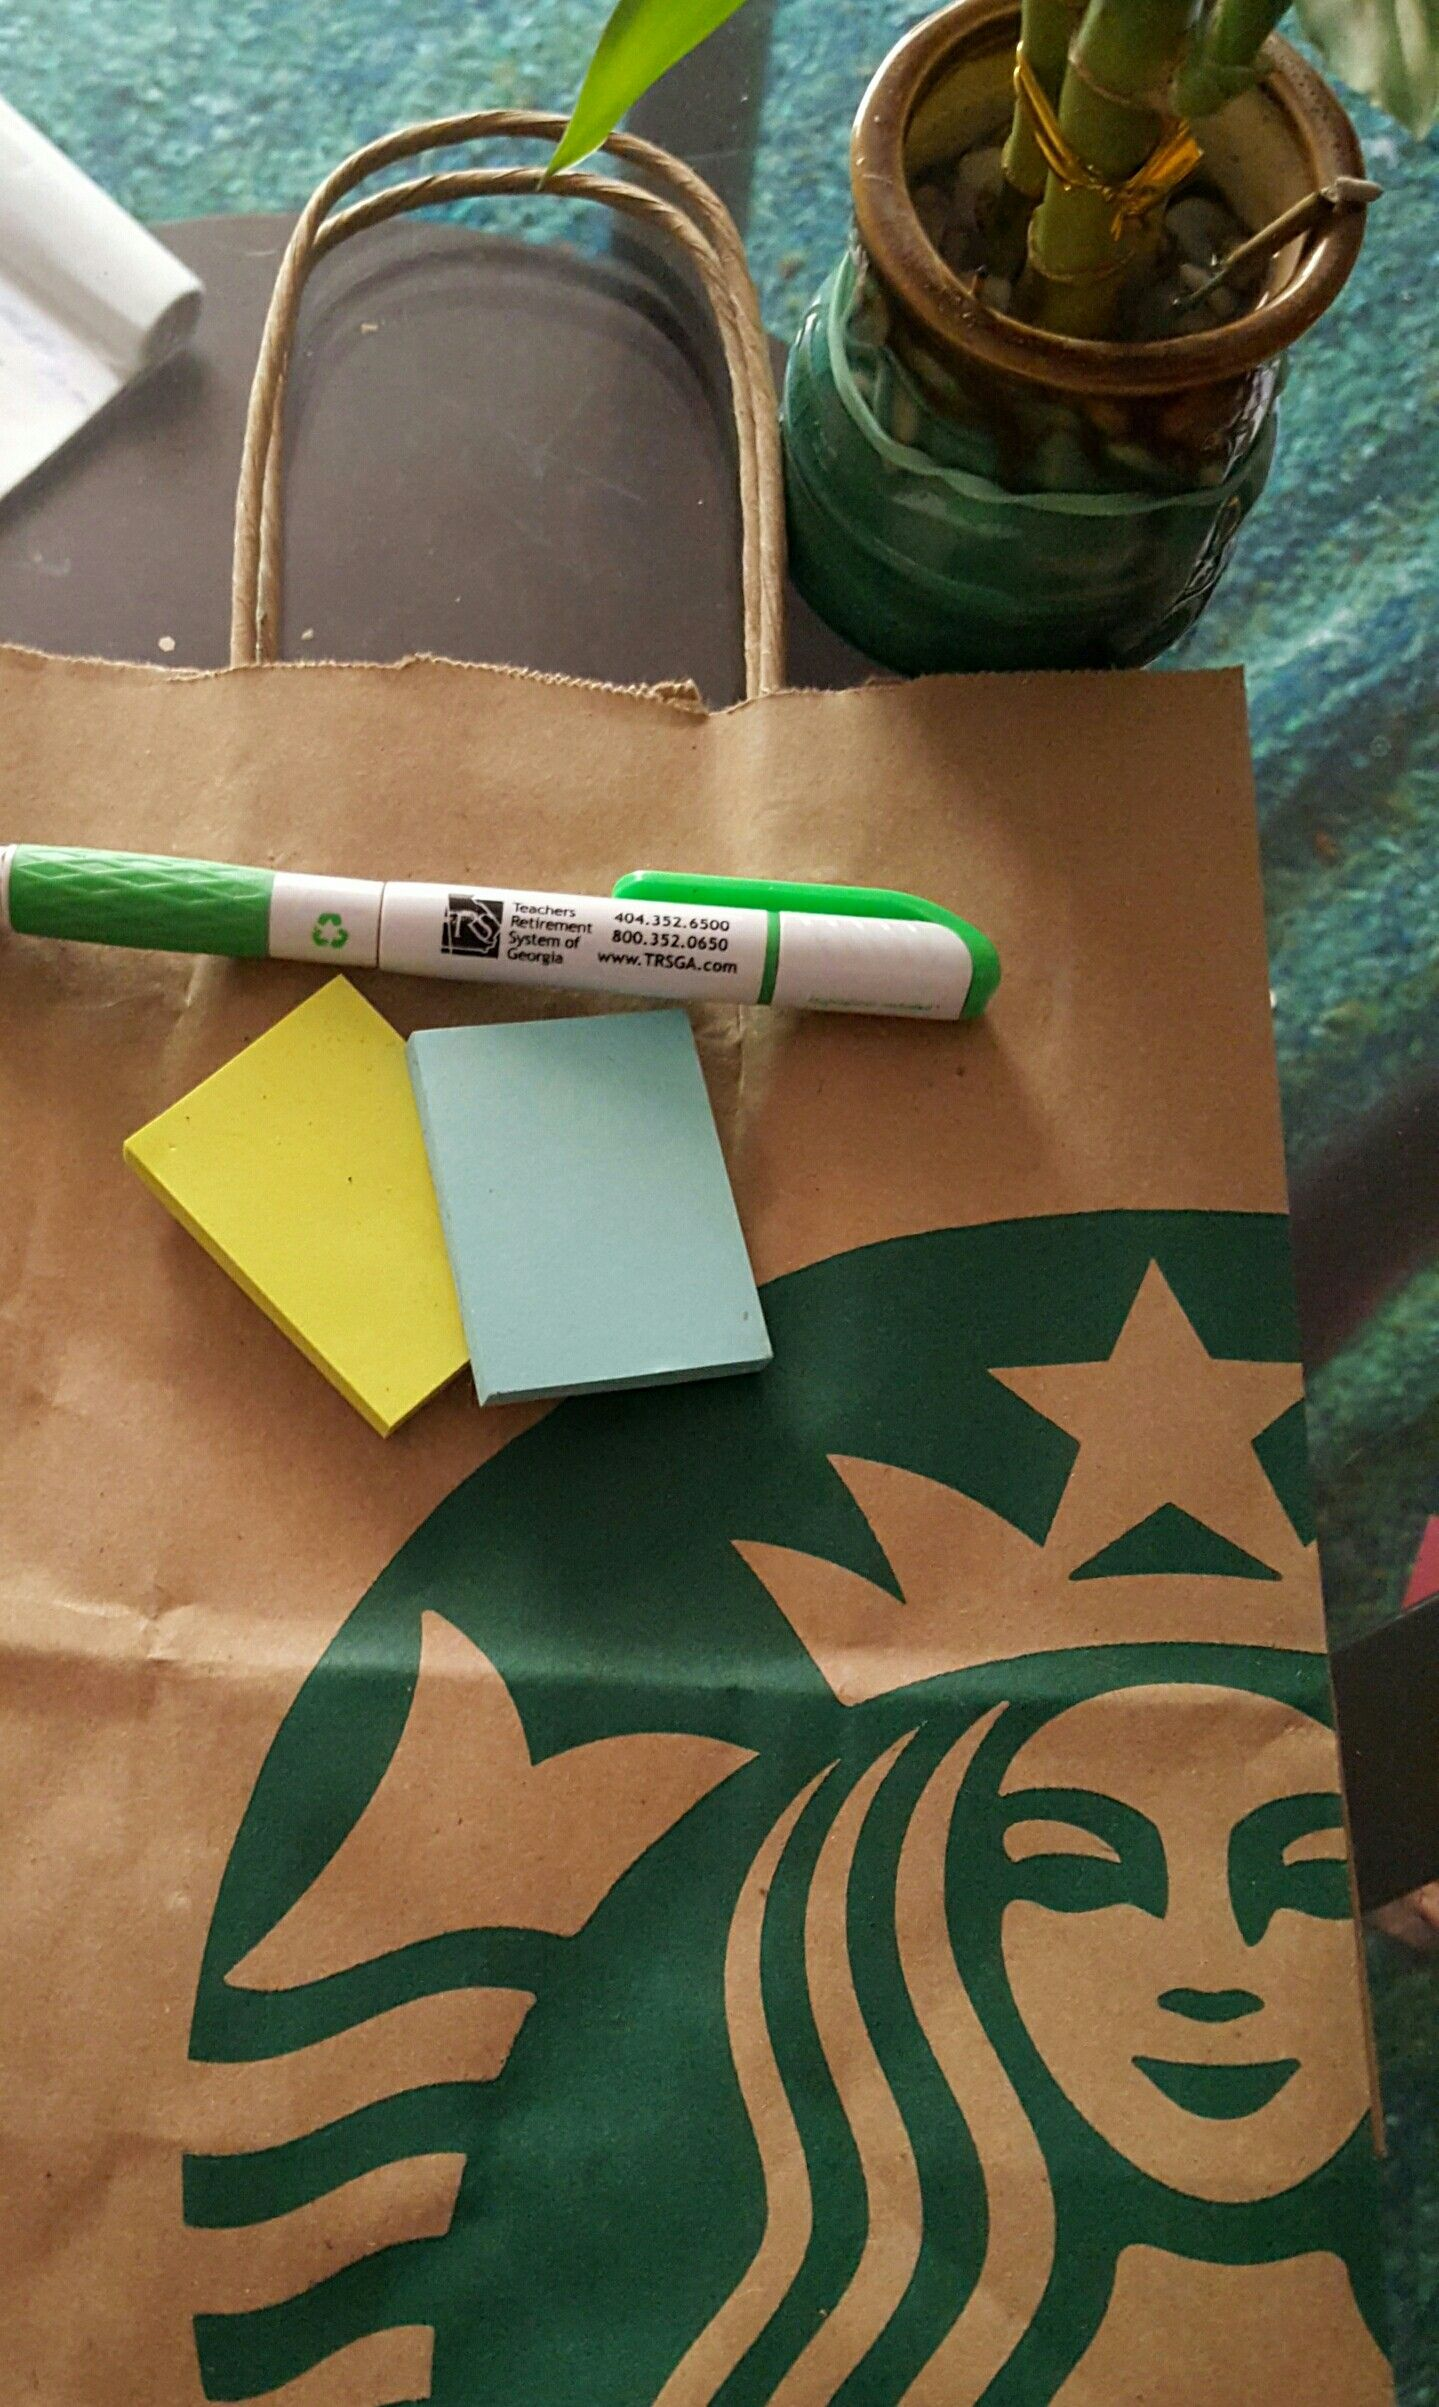 Lime Green Post it notes. Georgia Teacher Retirement Pen. Bamboo Plant. Starbucks Recyclable Bag. 5 Star Crown.